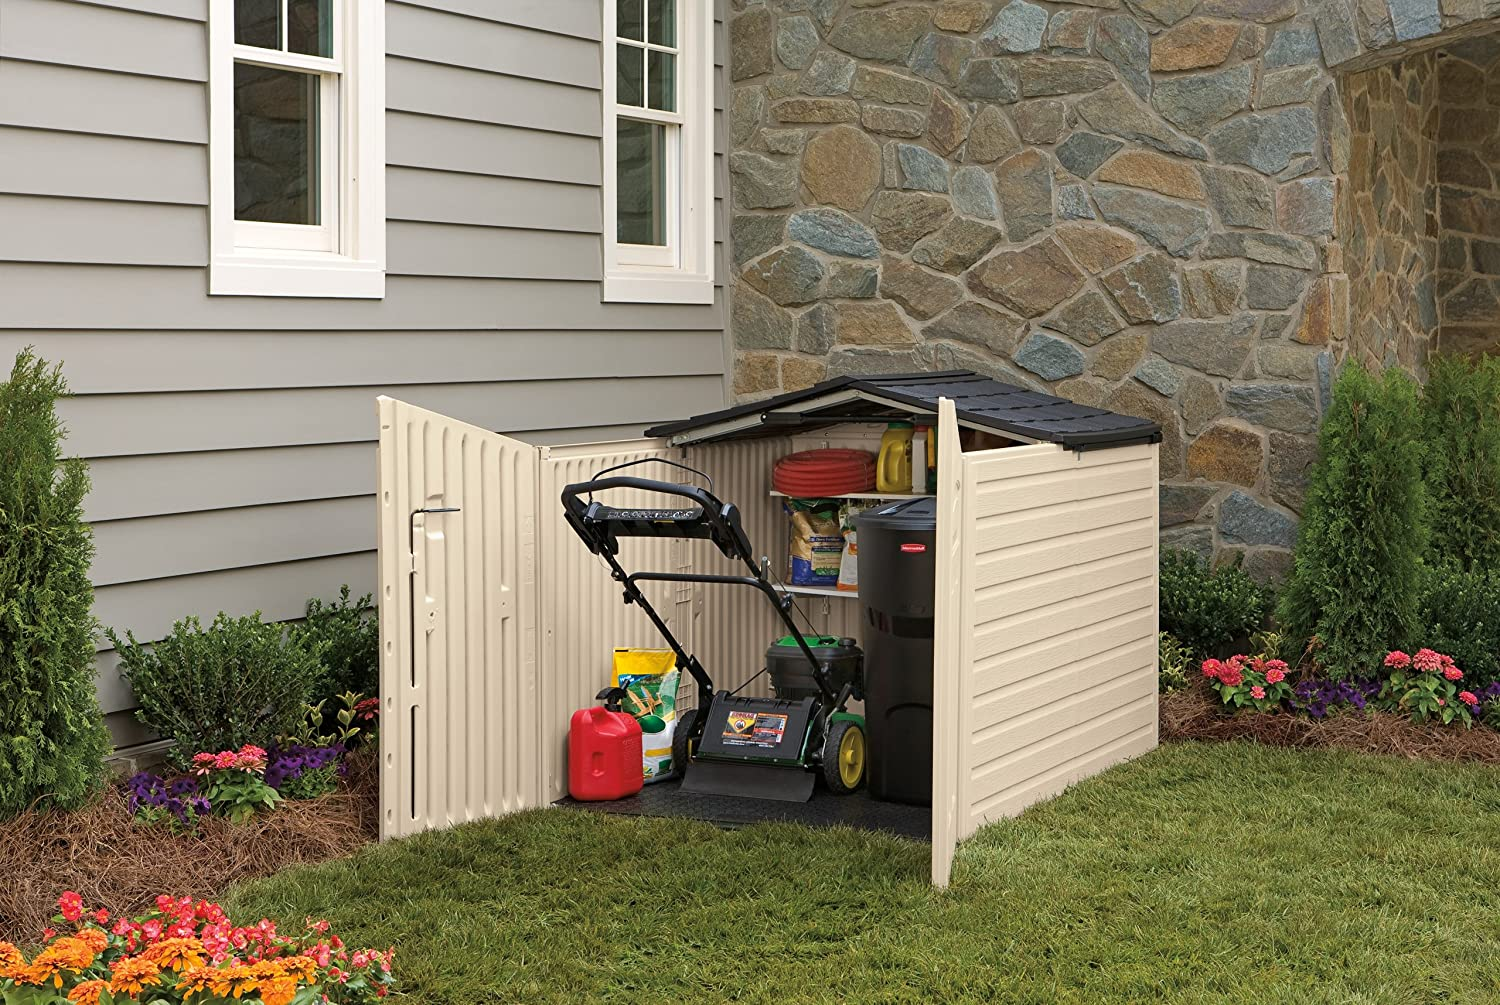 Rubbermaid outdoor storage for Lawn mower storage shed